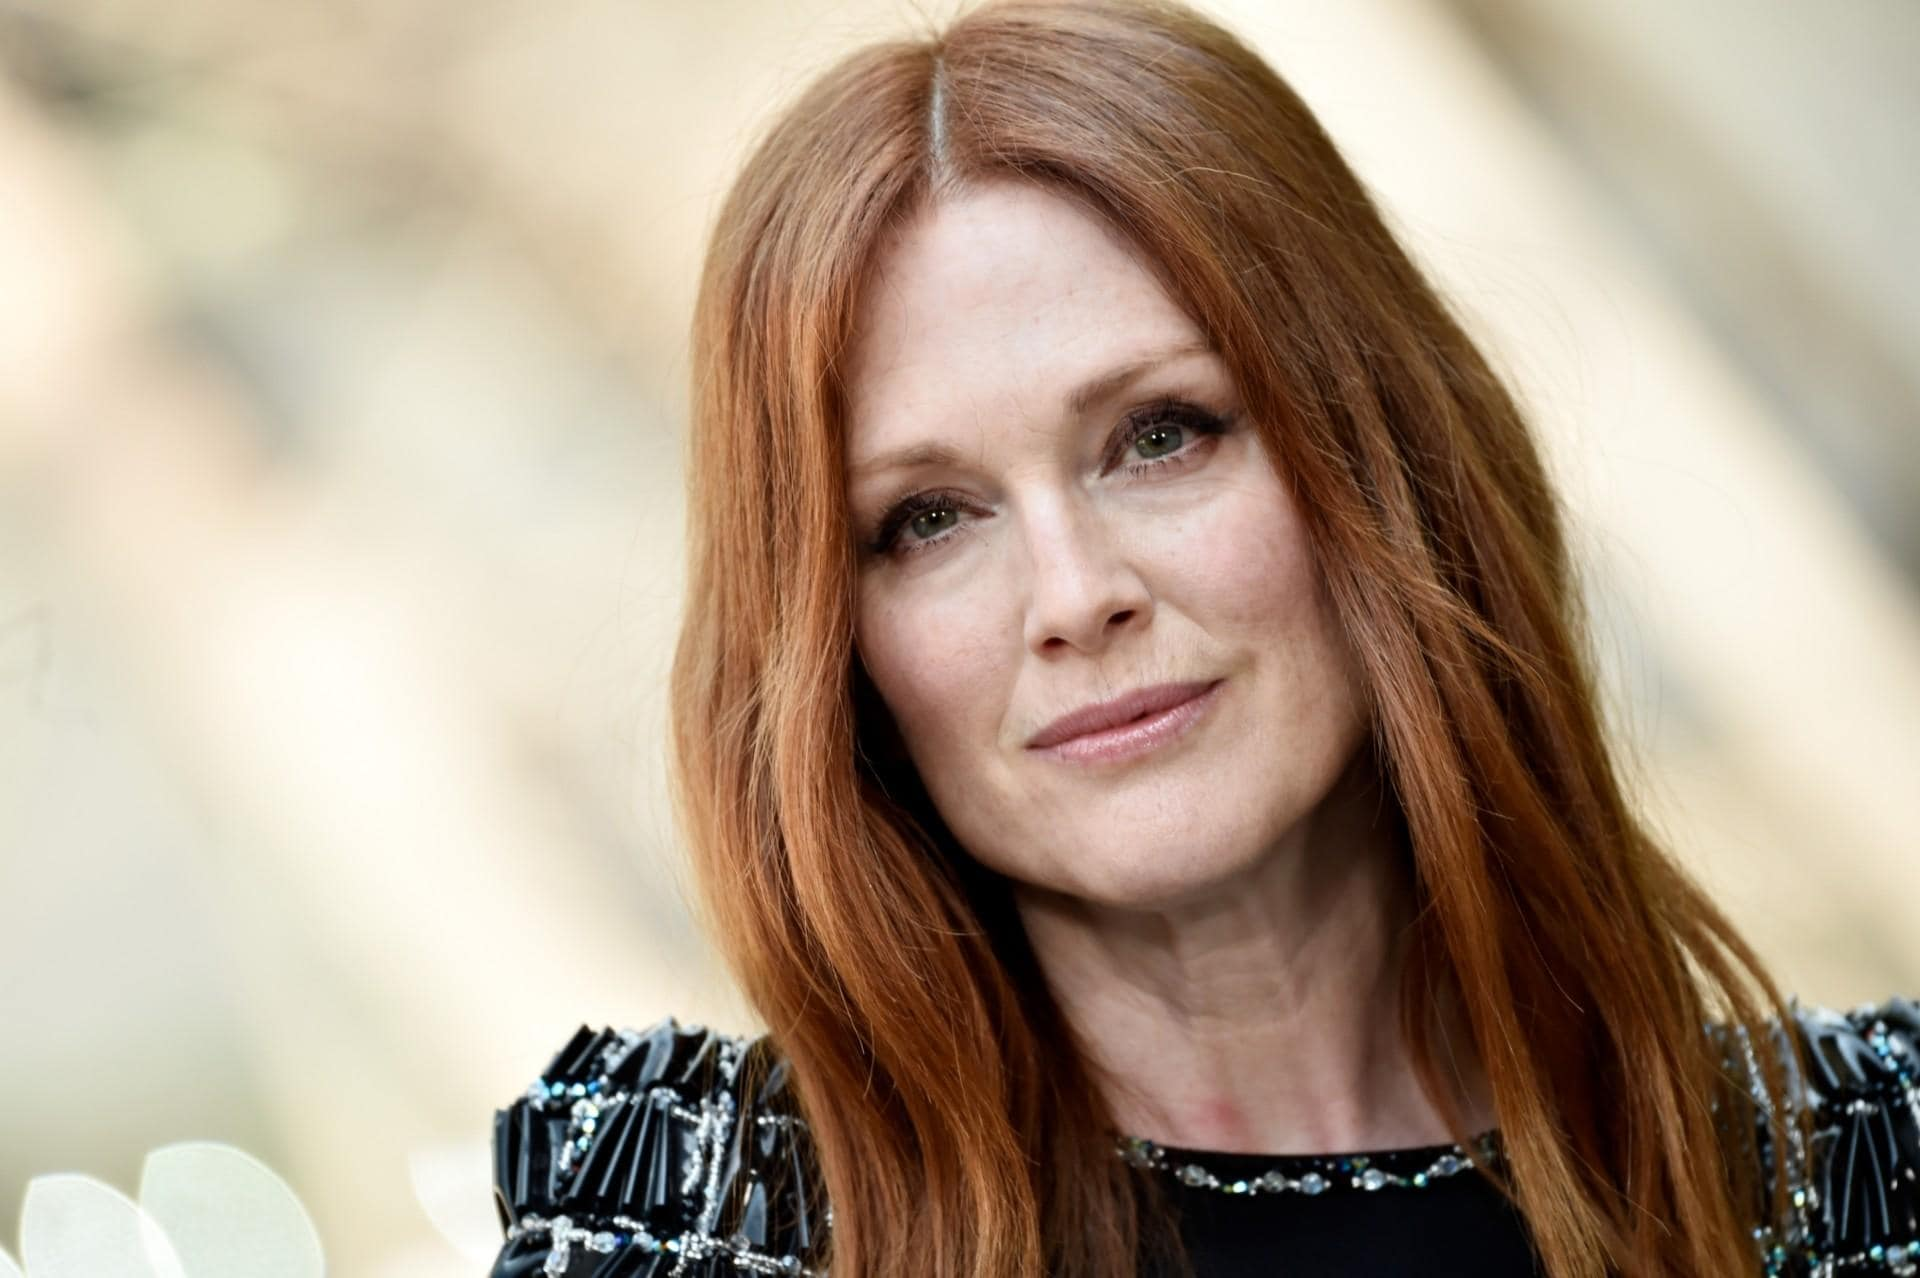 julianne-moore-says-she-doesnt-get-paid-equally-for-her-films